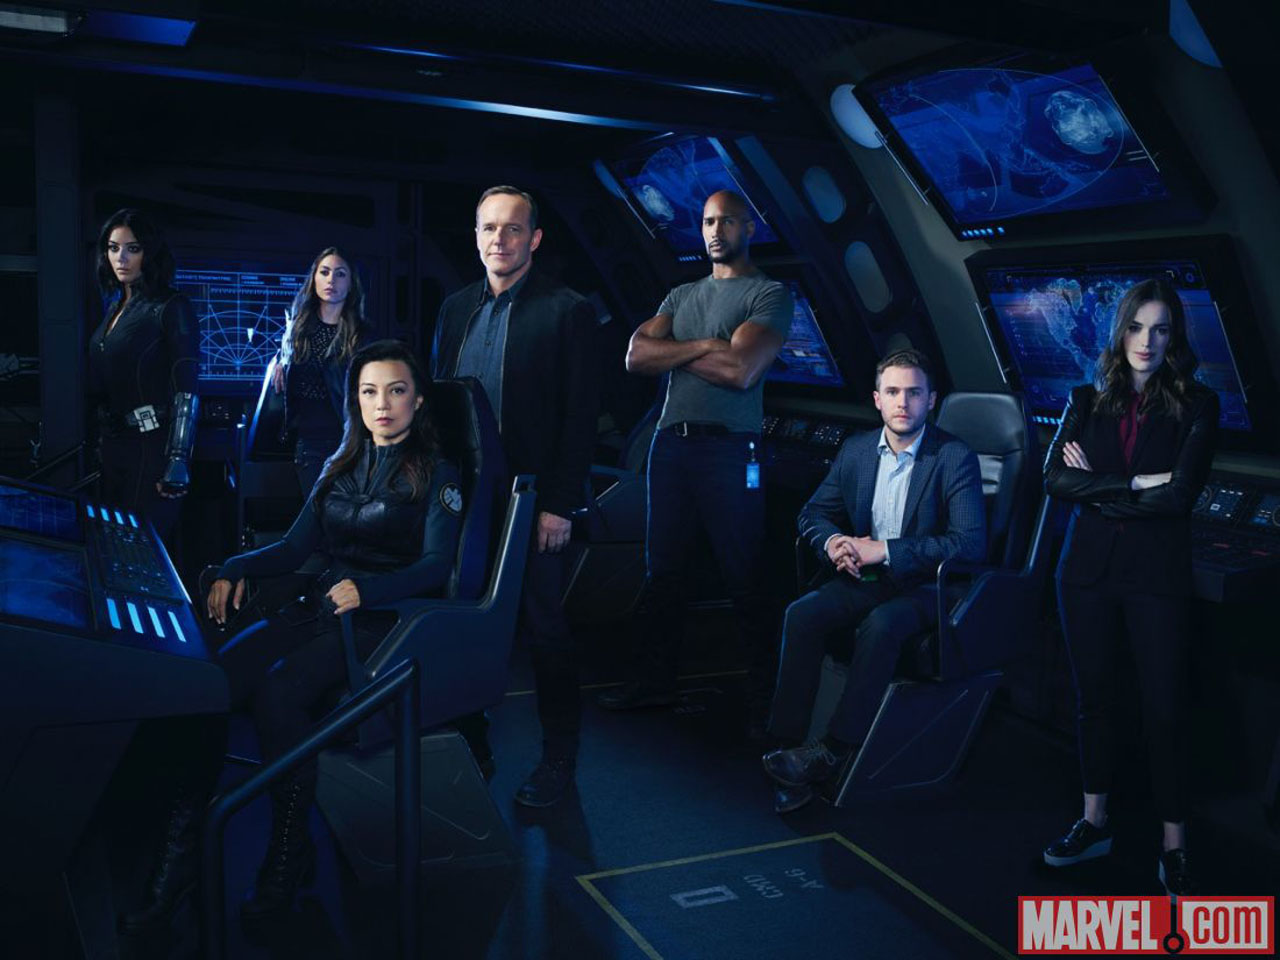 Agents of S.H.I.E.L.D. (TV Series 2013– ) - IMDb